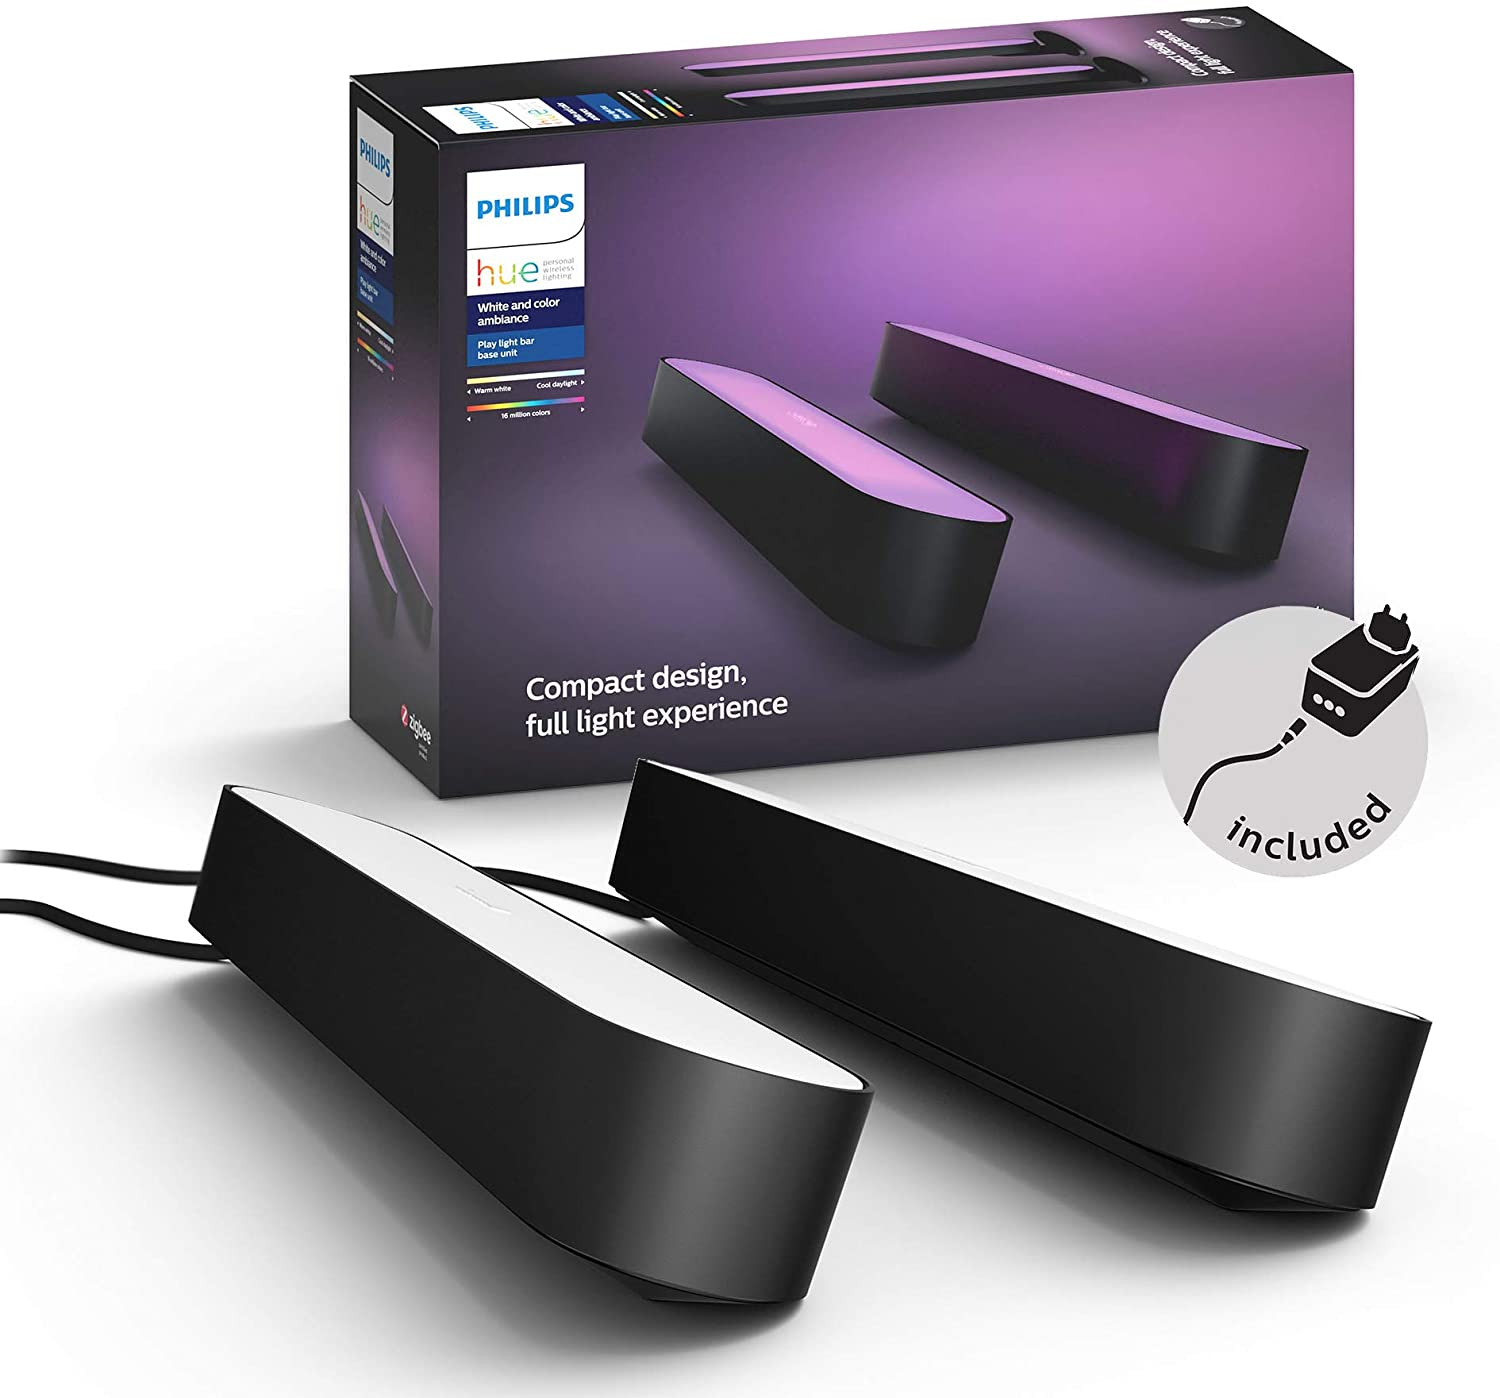 PHILIPS HUE Play zwart - duo pack